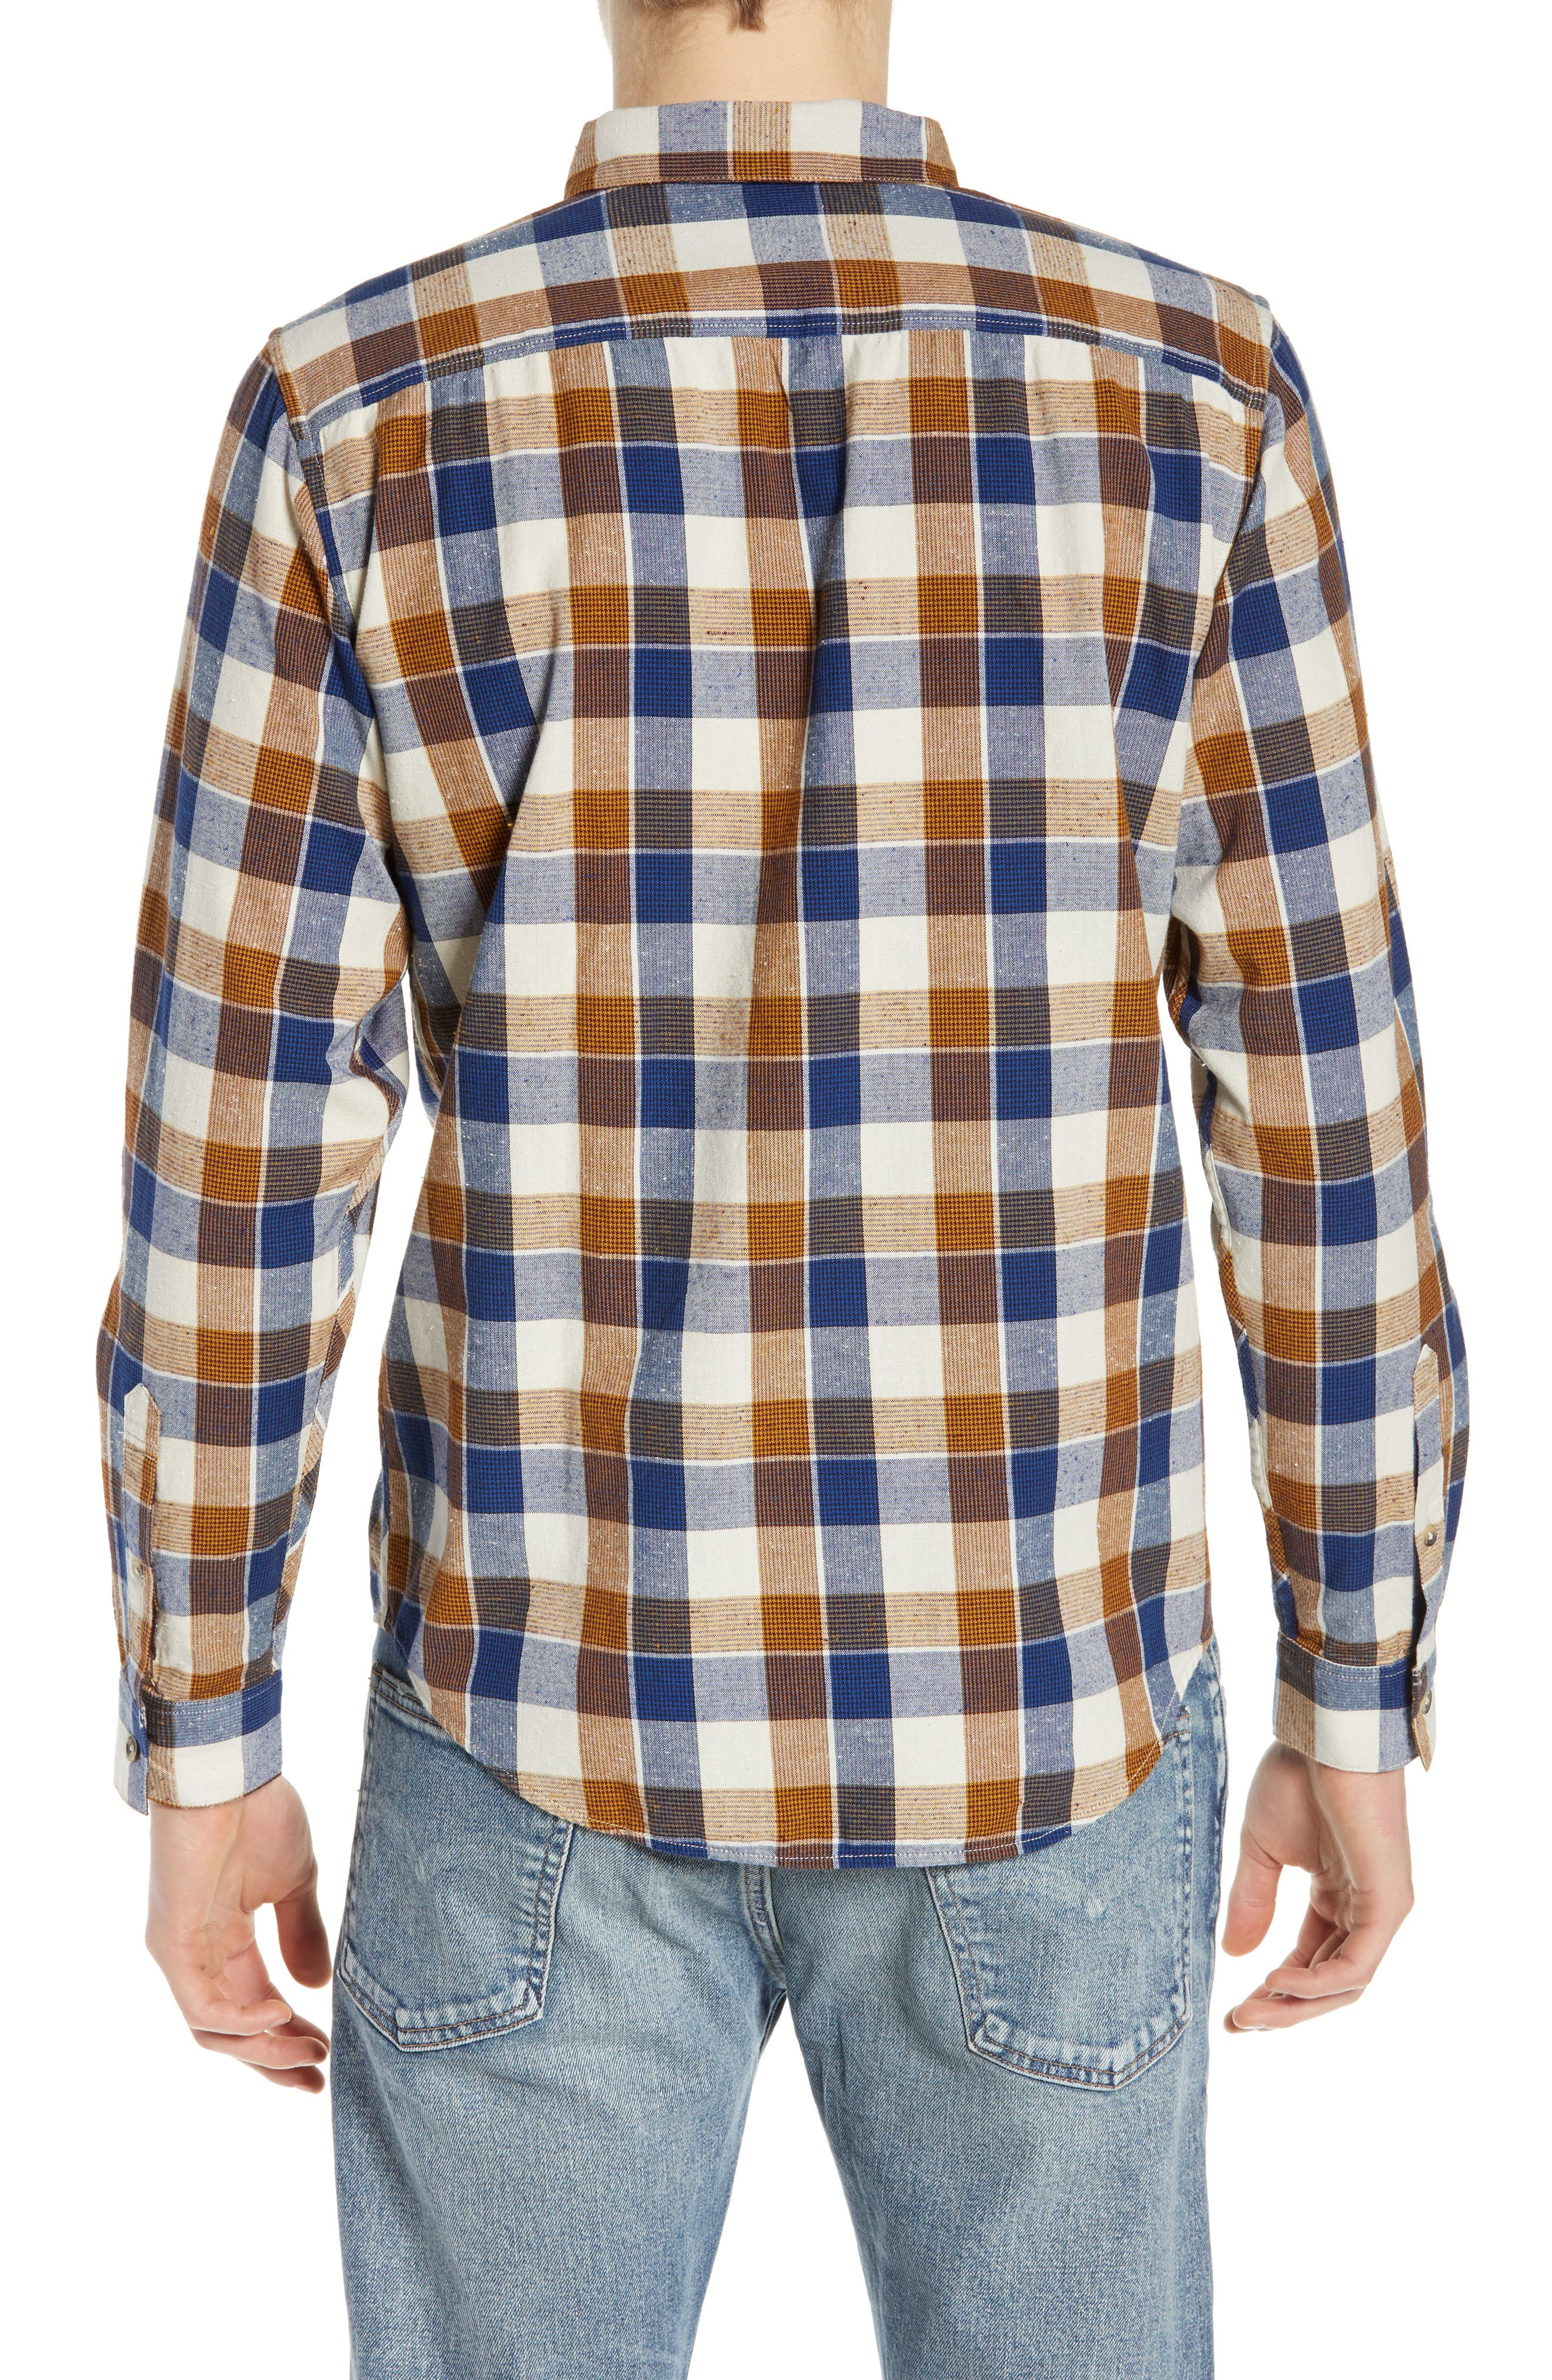 LEVI'S<SUP>®</SUP> MADE & CRAFTED<SUP>™</SUP>, Standard Plaid Sport Shirt, Alternate thumbnail 3, color, LEON PLAID MULTI